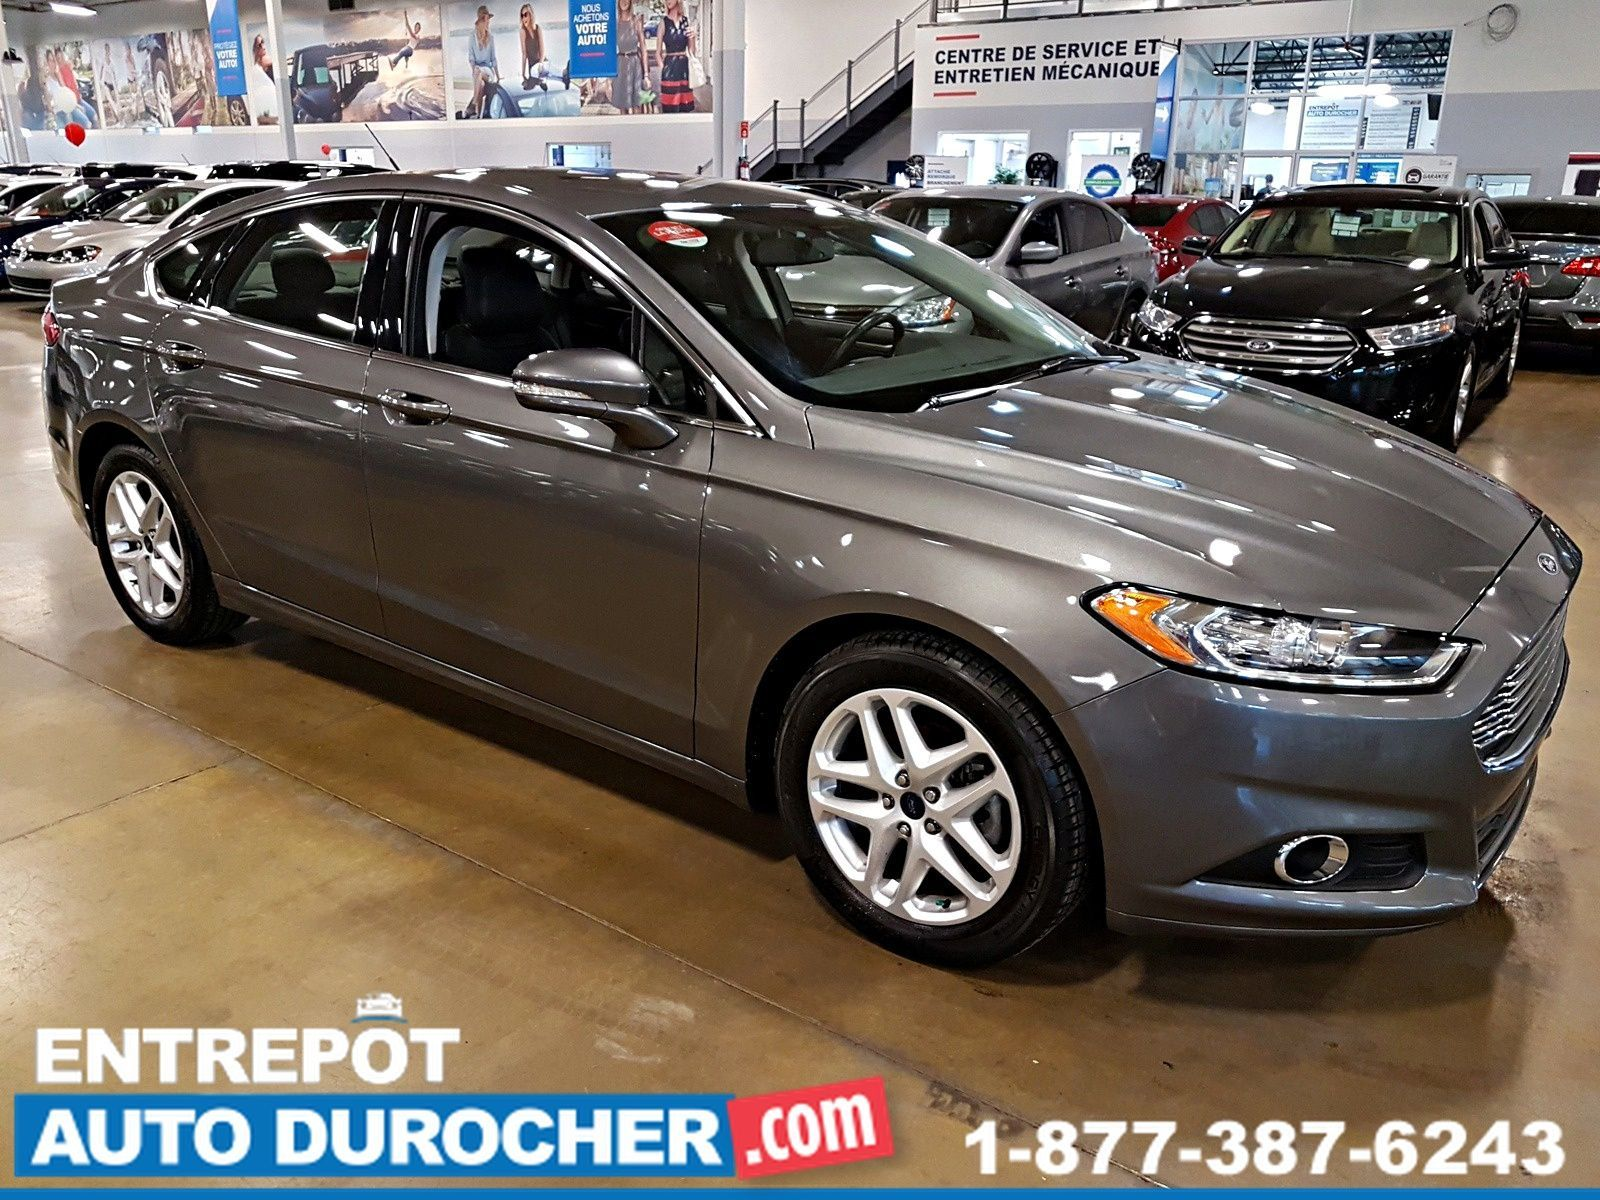 Auto Durocher Used Ford Fusion 2014 For Sale In Laval Stock N 3 Se Automatique Navigation Camra De Recul A C